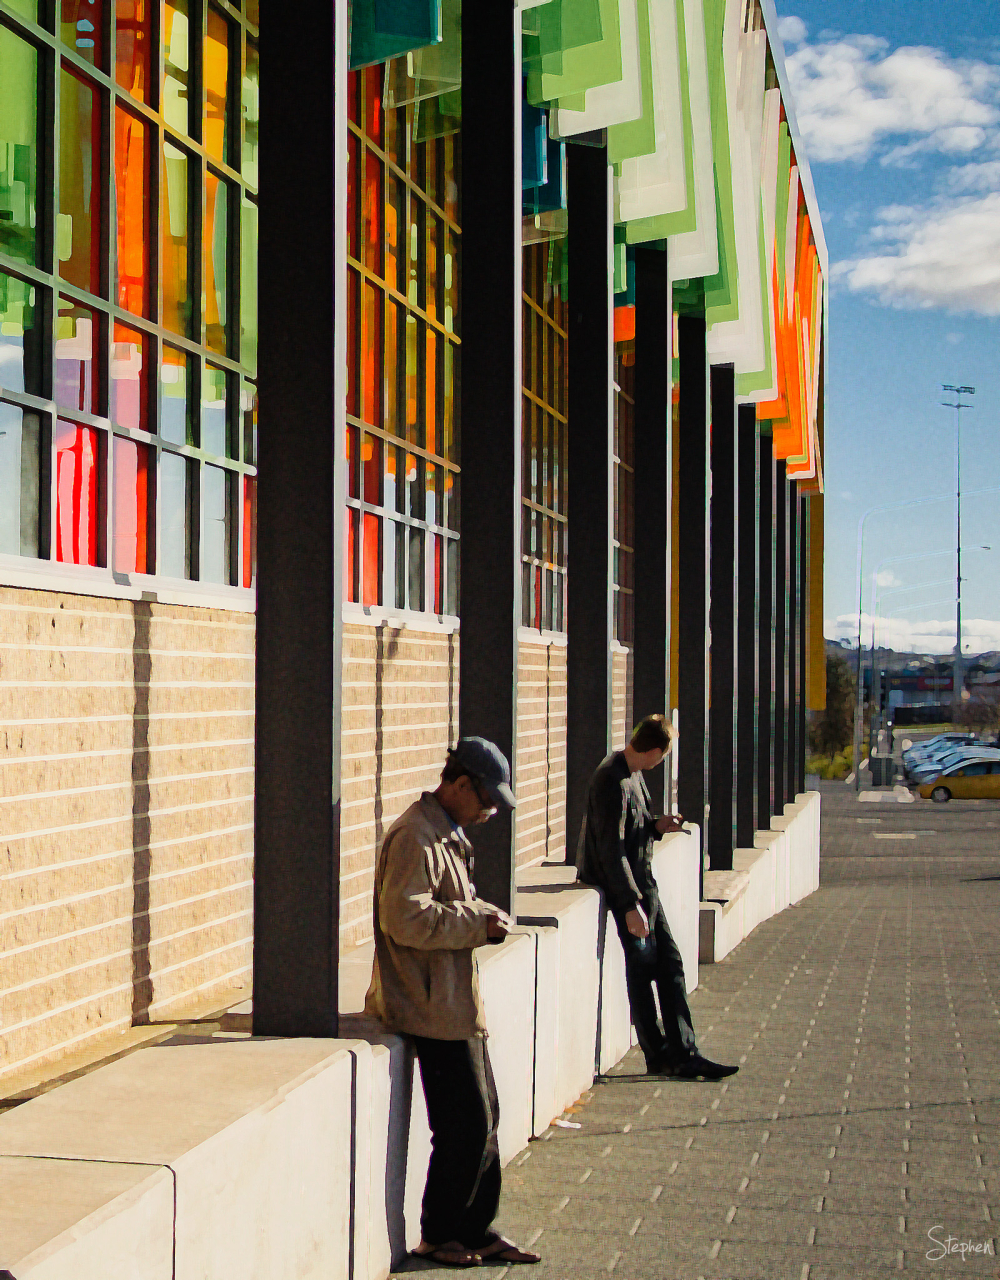 Street view of the Gungahlin Library